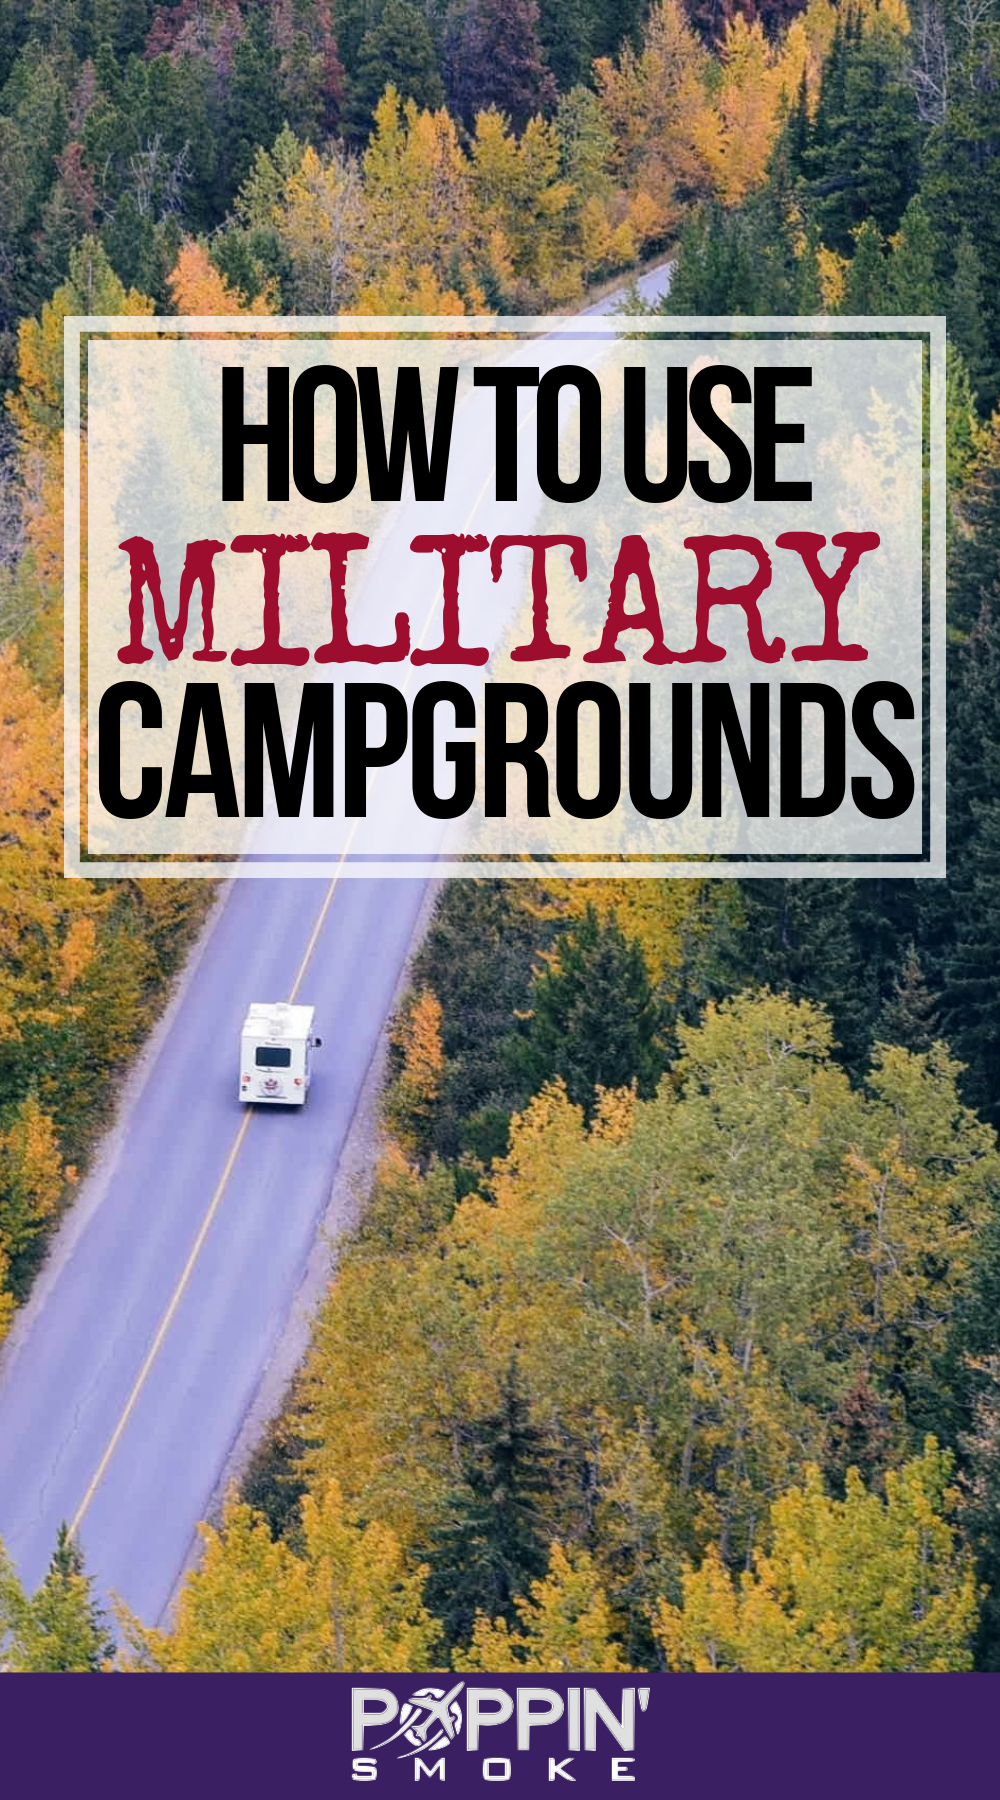 HOW TO USE MILITARY CAMPGROUNDS